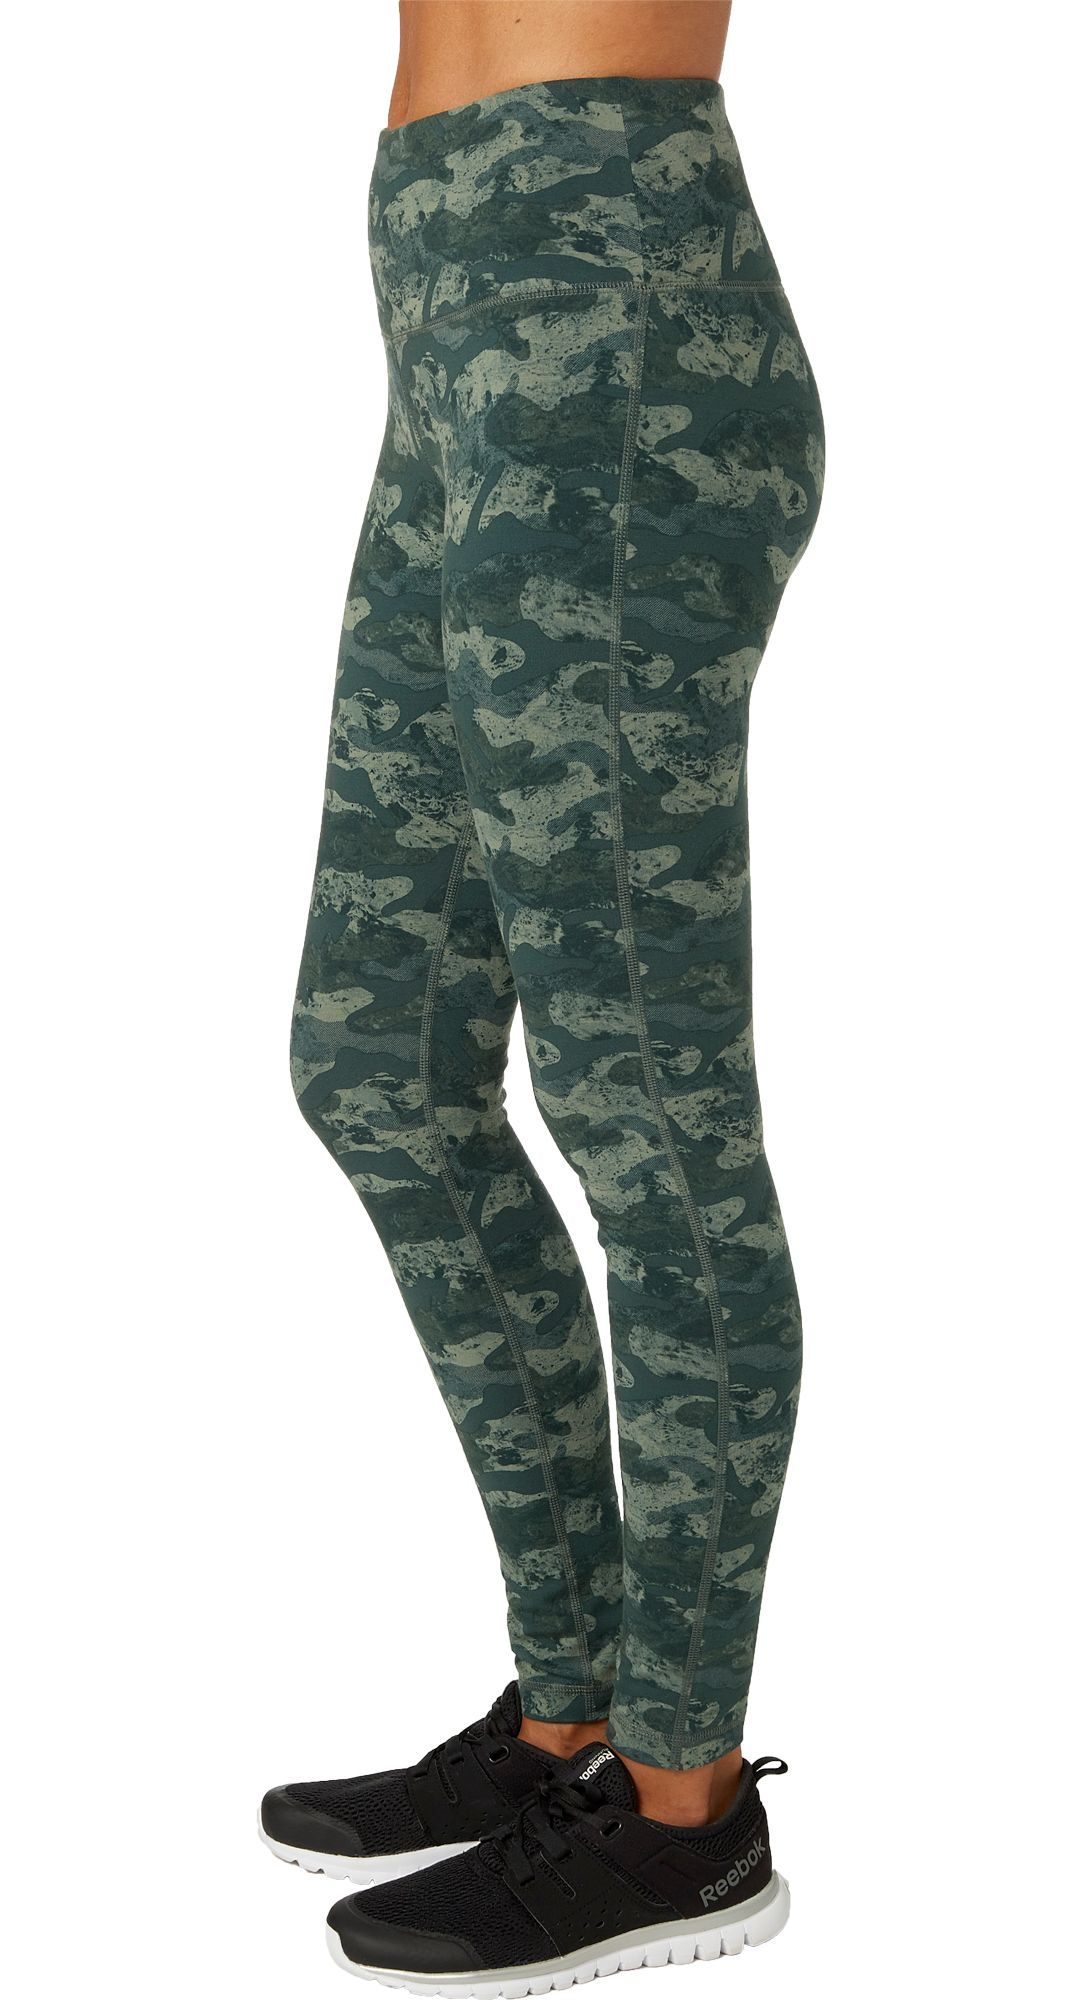 cheap vast selection best value Reebok Women's High Waisted Printed Stretch Cotton Leggings